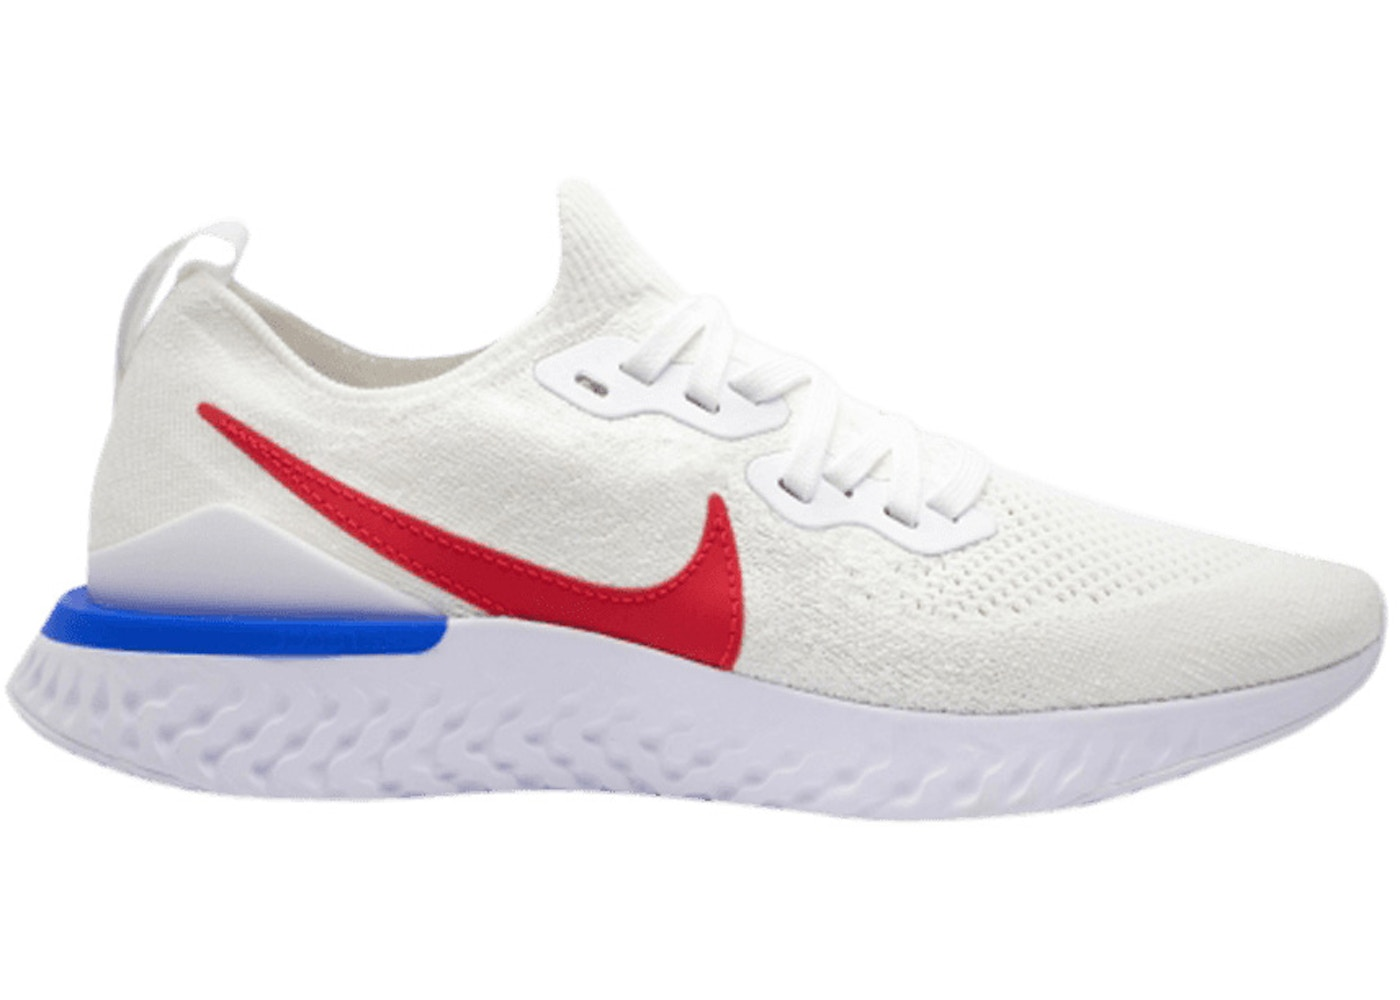 uk availability b723a c4673 Nike Epic React 2 Classic Cortez - CJ8295-100